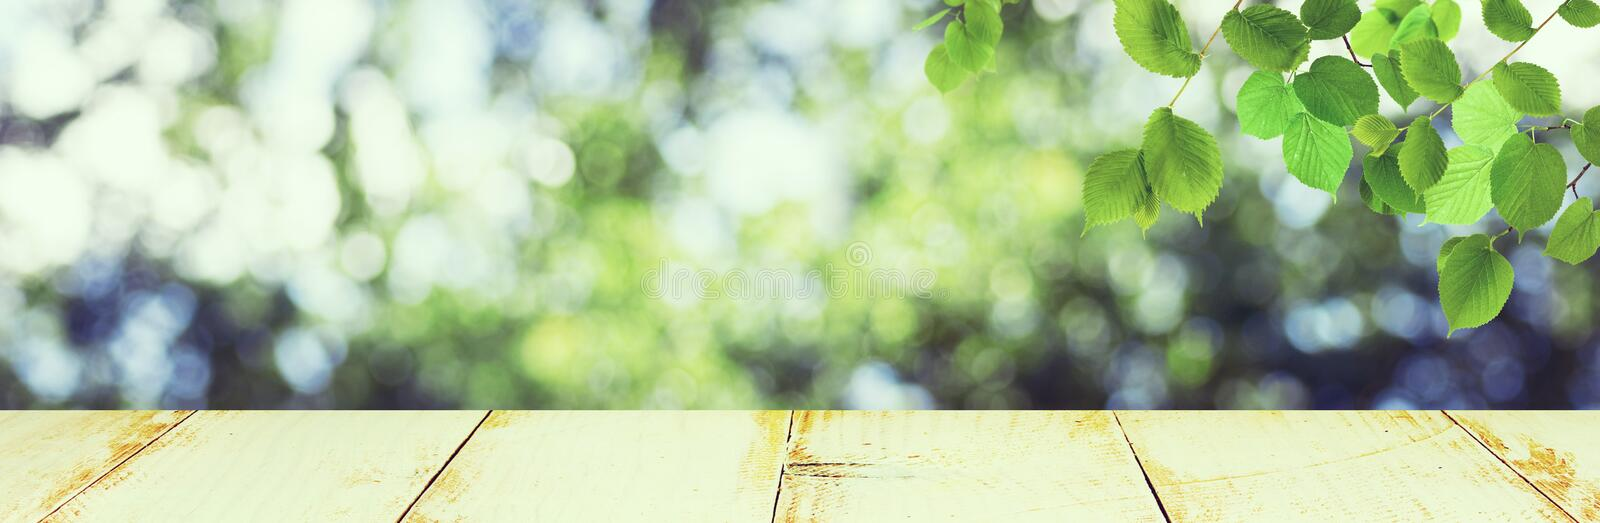 Green stylized balls on a beautiful abstract blurred natural background. Image of green stylized balls on a beautiful abstract blurred natural background.3d stock photography